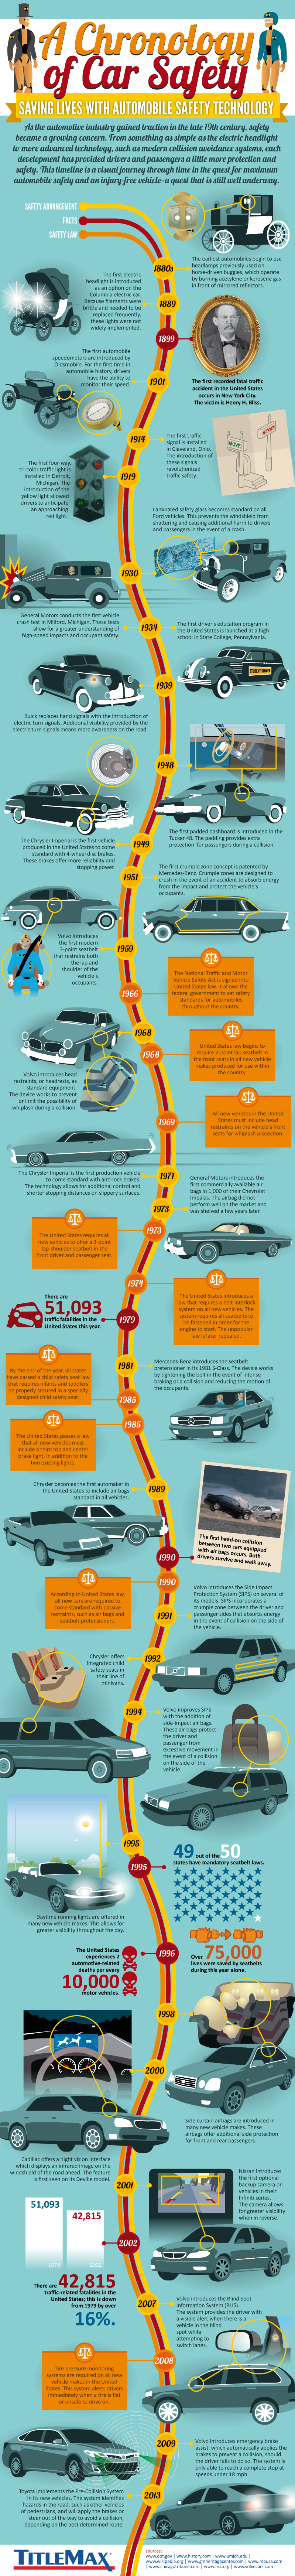 Car safety has come a long way, from the simplest of features to the exceptionally advanced, and continues to make you and your family that much more safe while behind the wheel. See how care safety has changed over time! #TitleMax